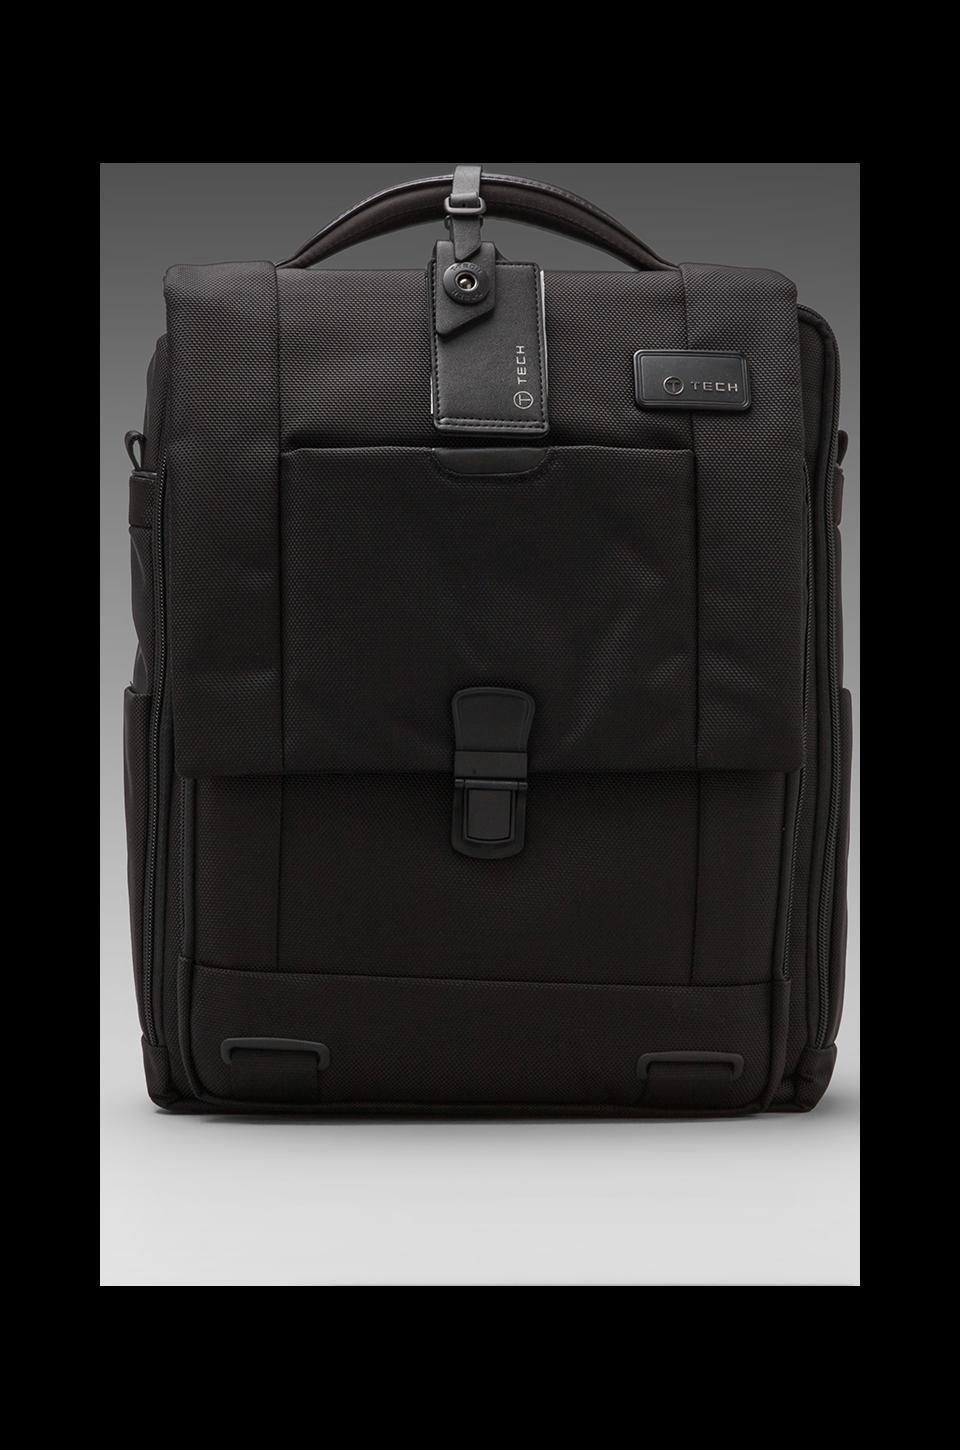 Tumi Convertible Laptop Brief in Black